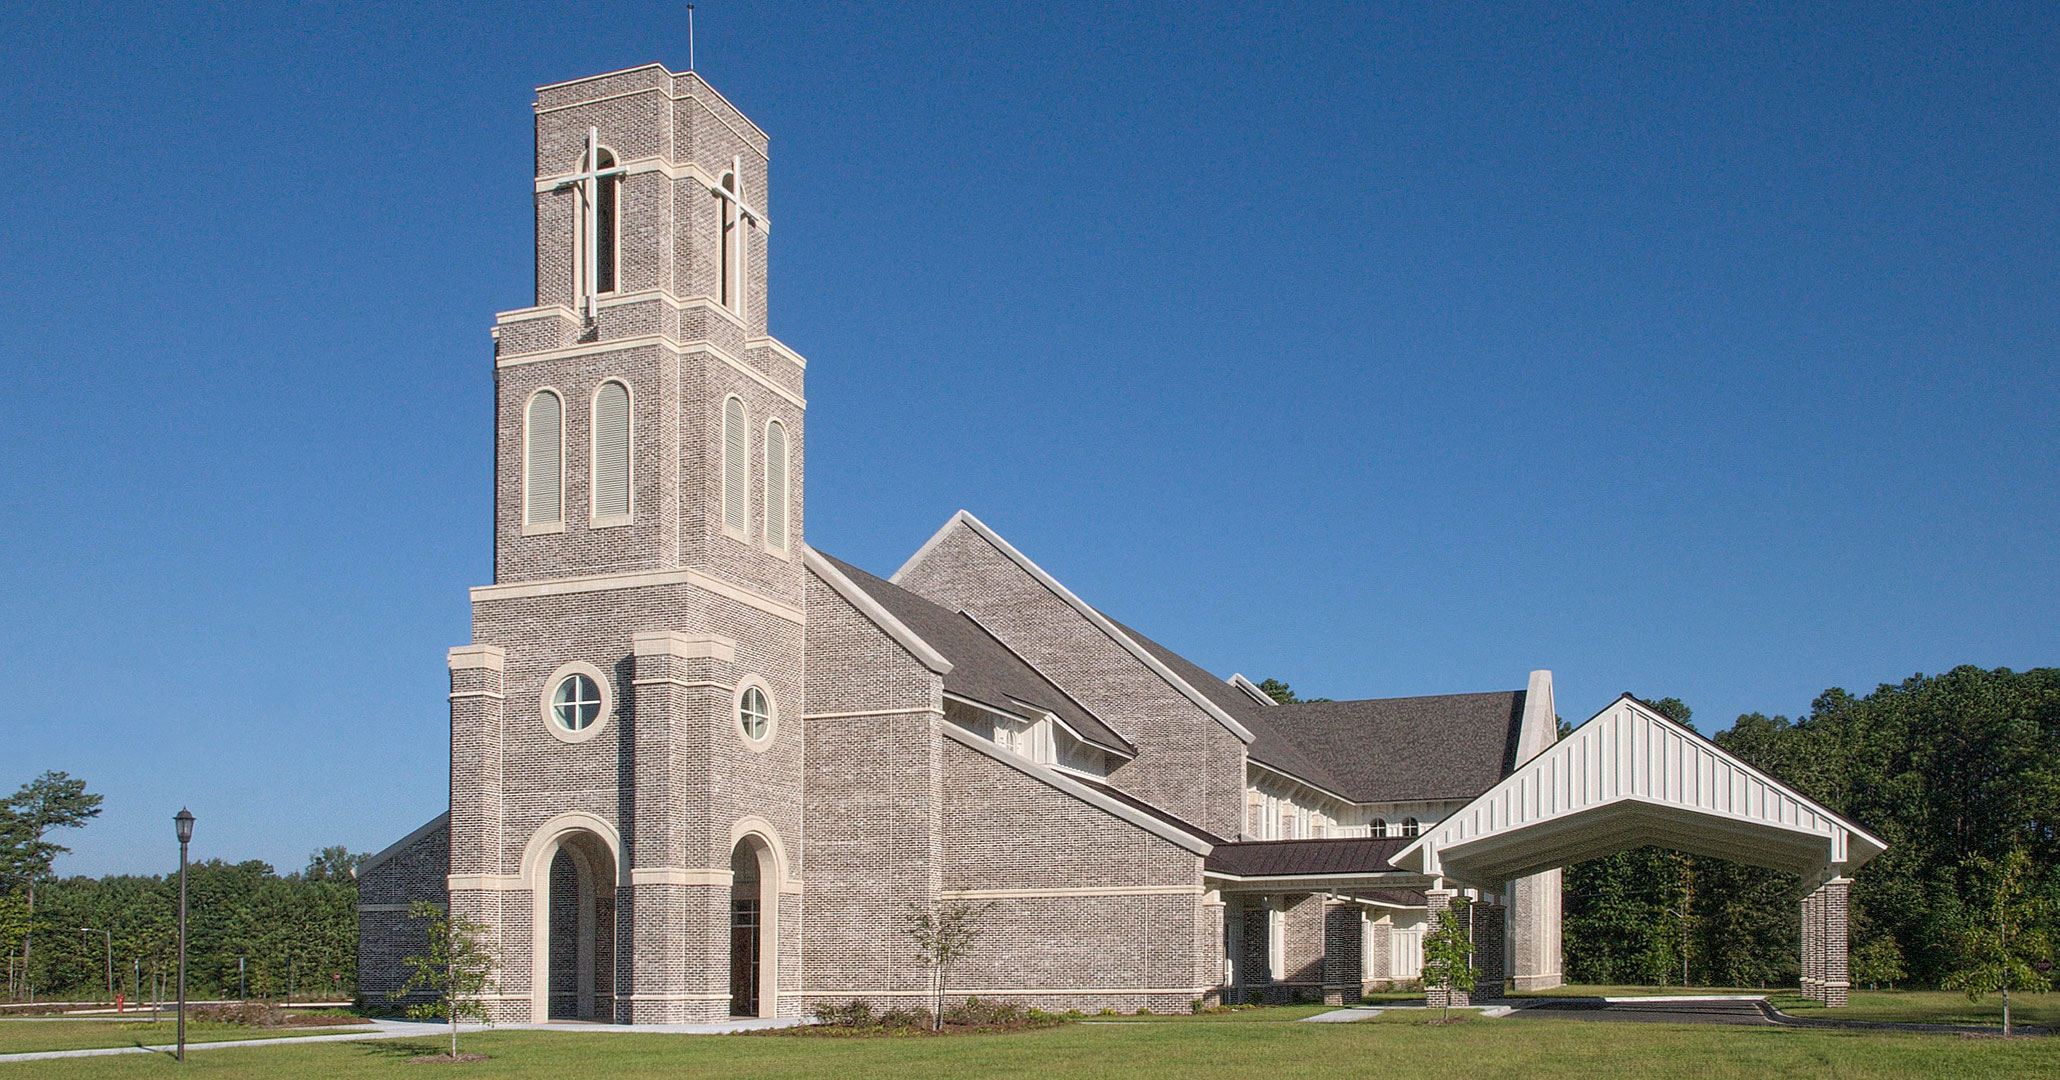 Boudreaux architects worked with St. Anne in Richmond Hill, GA to design an expansion at the church.